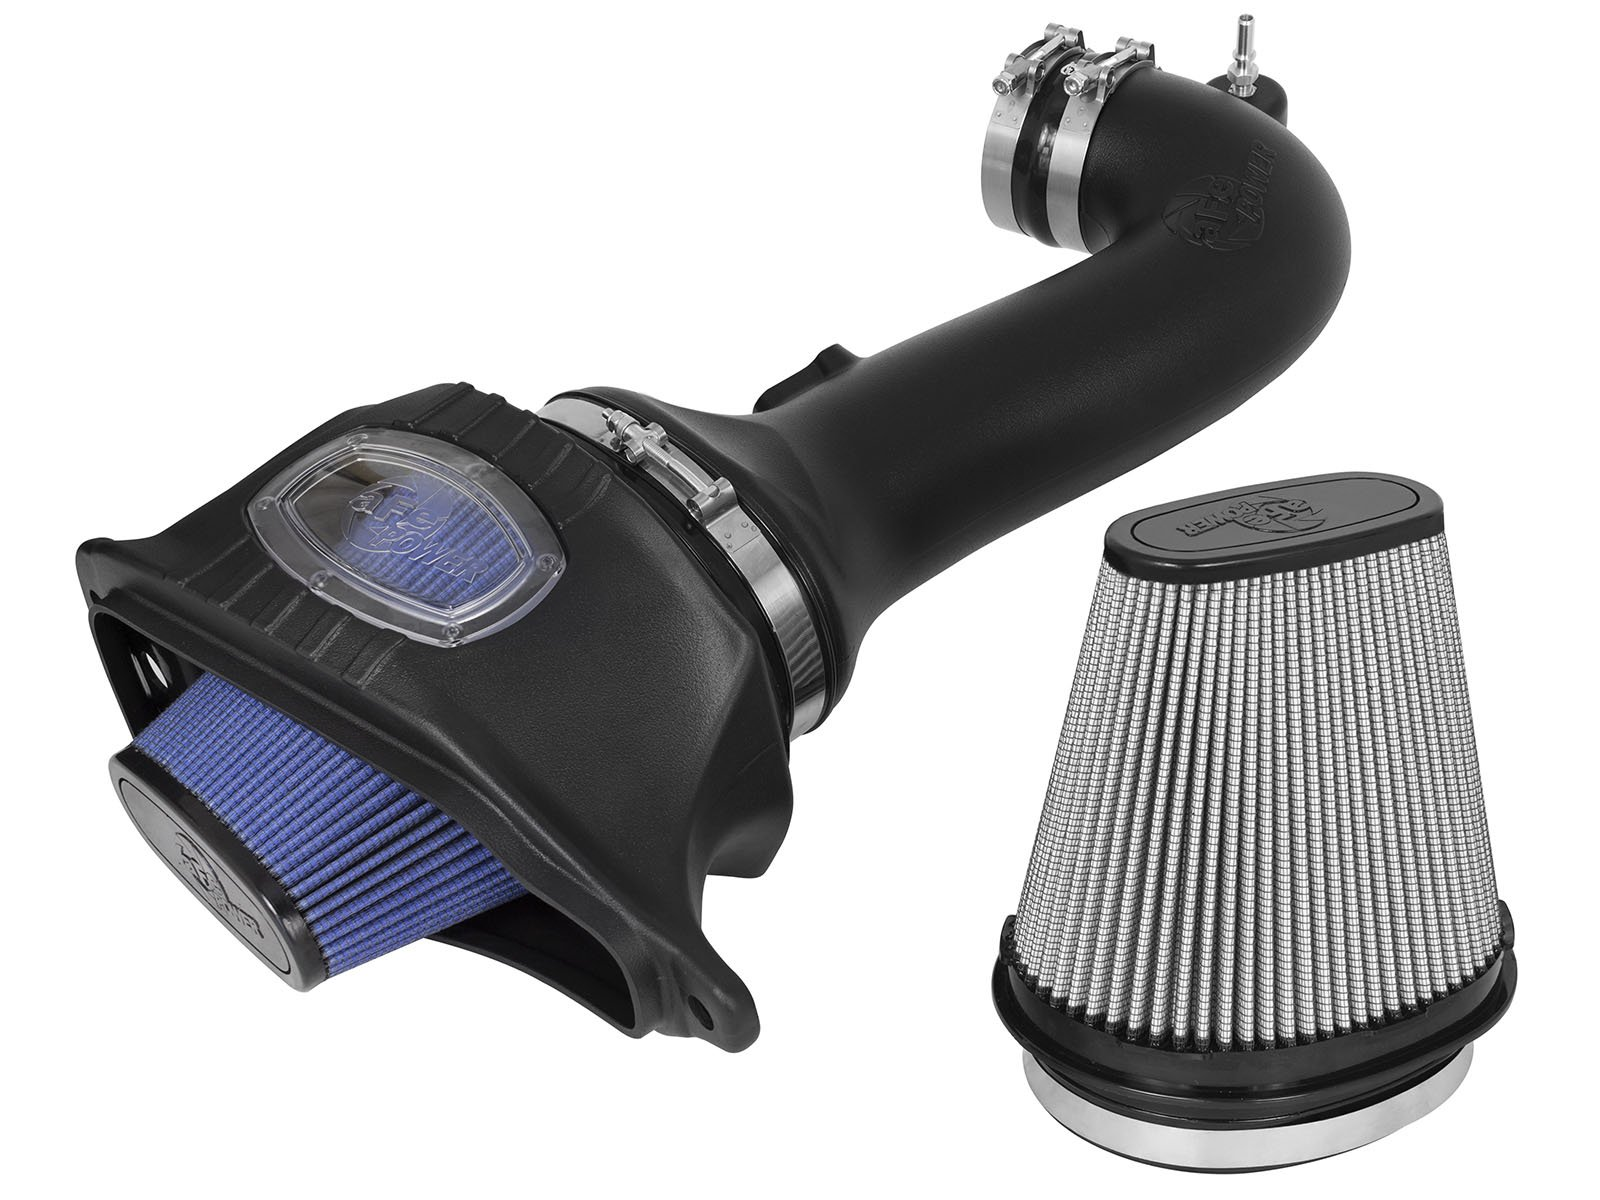 aFe Power 52-74202-1 Momentum Performance Intake System (Non CARB Compliant, Dry, 3-Layer Filter/Oiled, 5-Layer Filter)